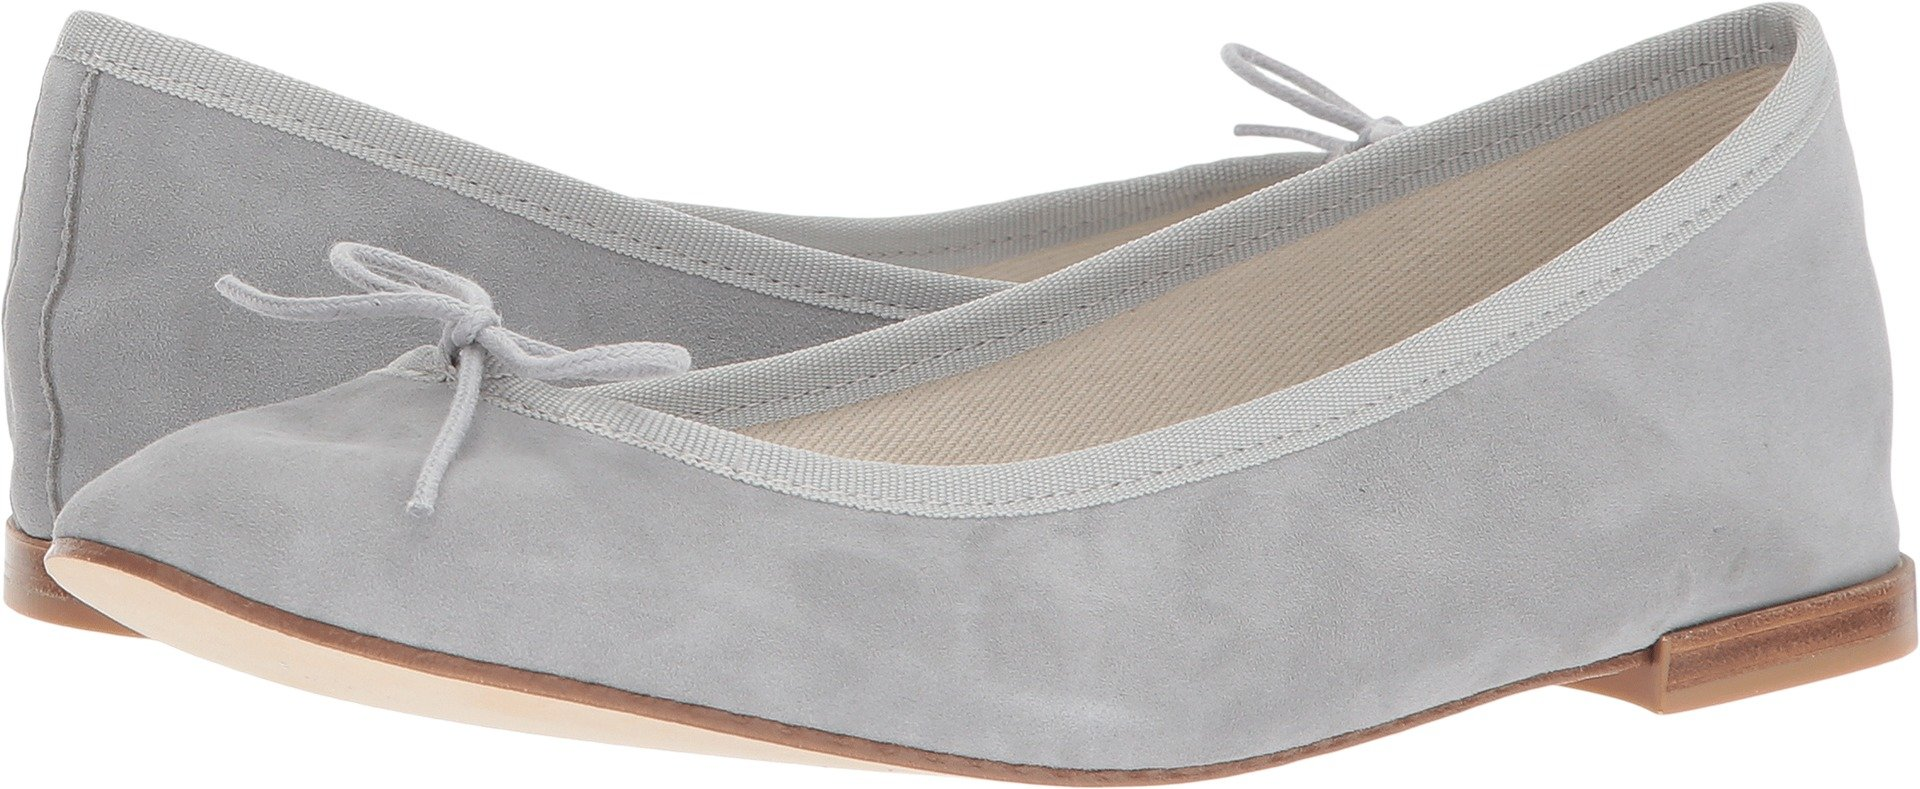 Repetto Women's Cendrillon Topo 39 M EU by Repetto